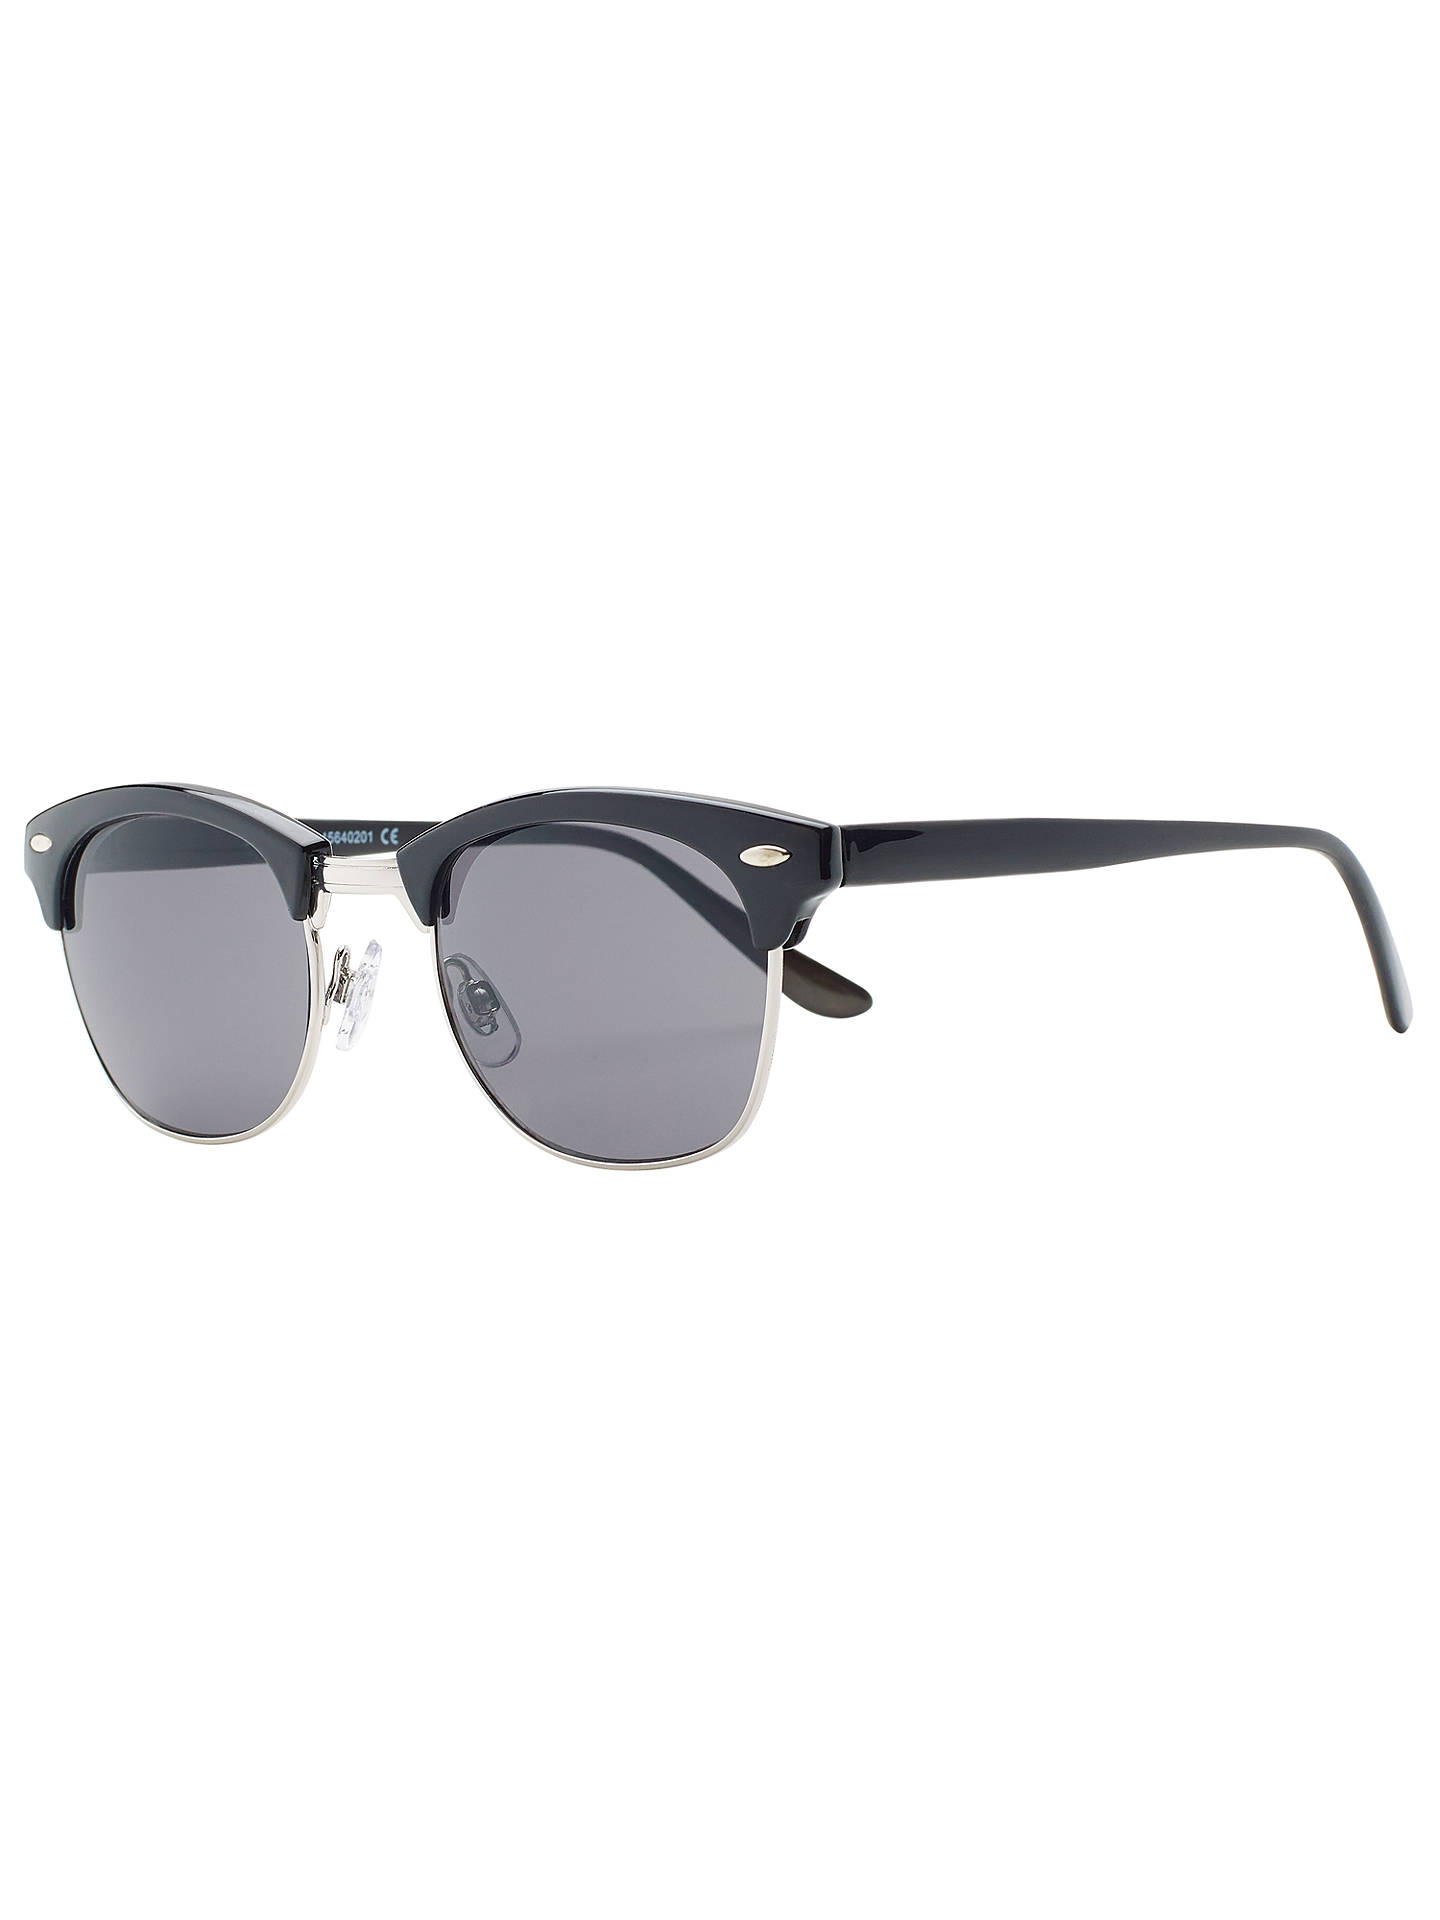 BuyJohn Lewis Plain Clubmaster Square Sunglasses, Black Online at johnlewis.com